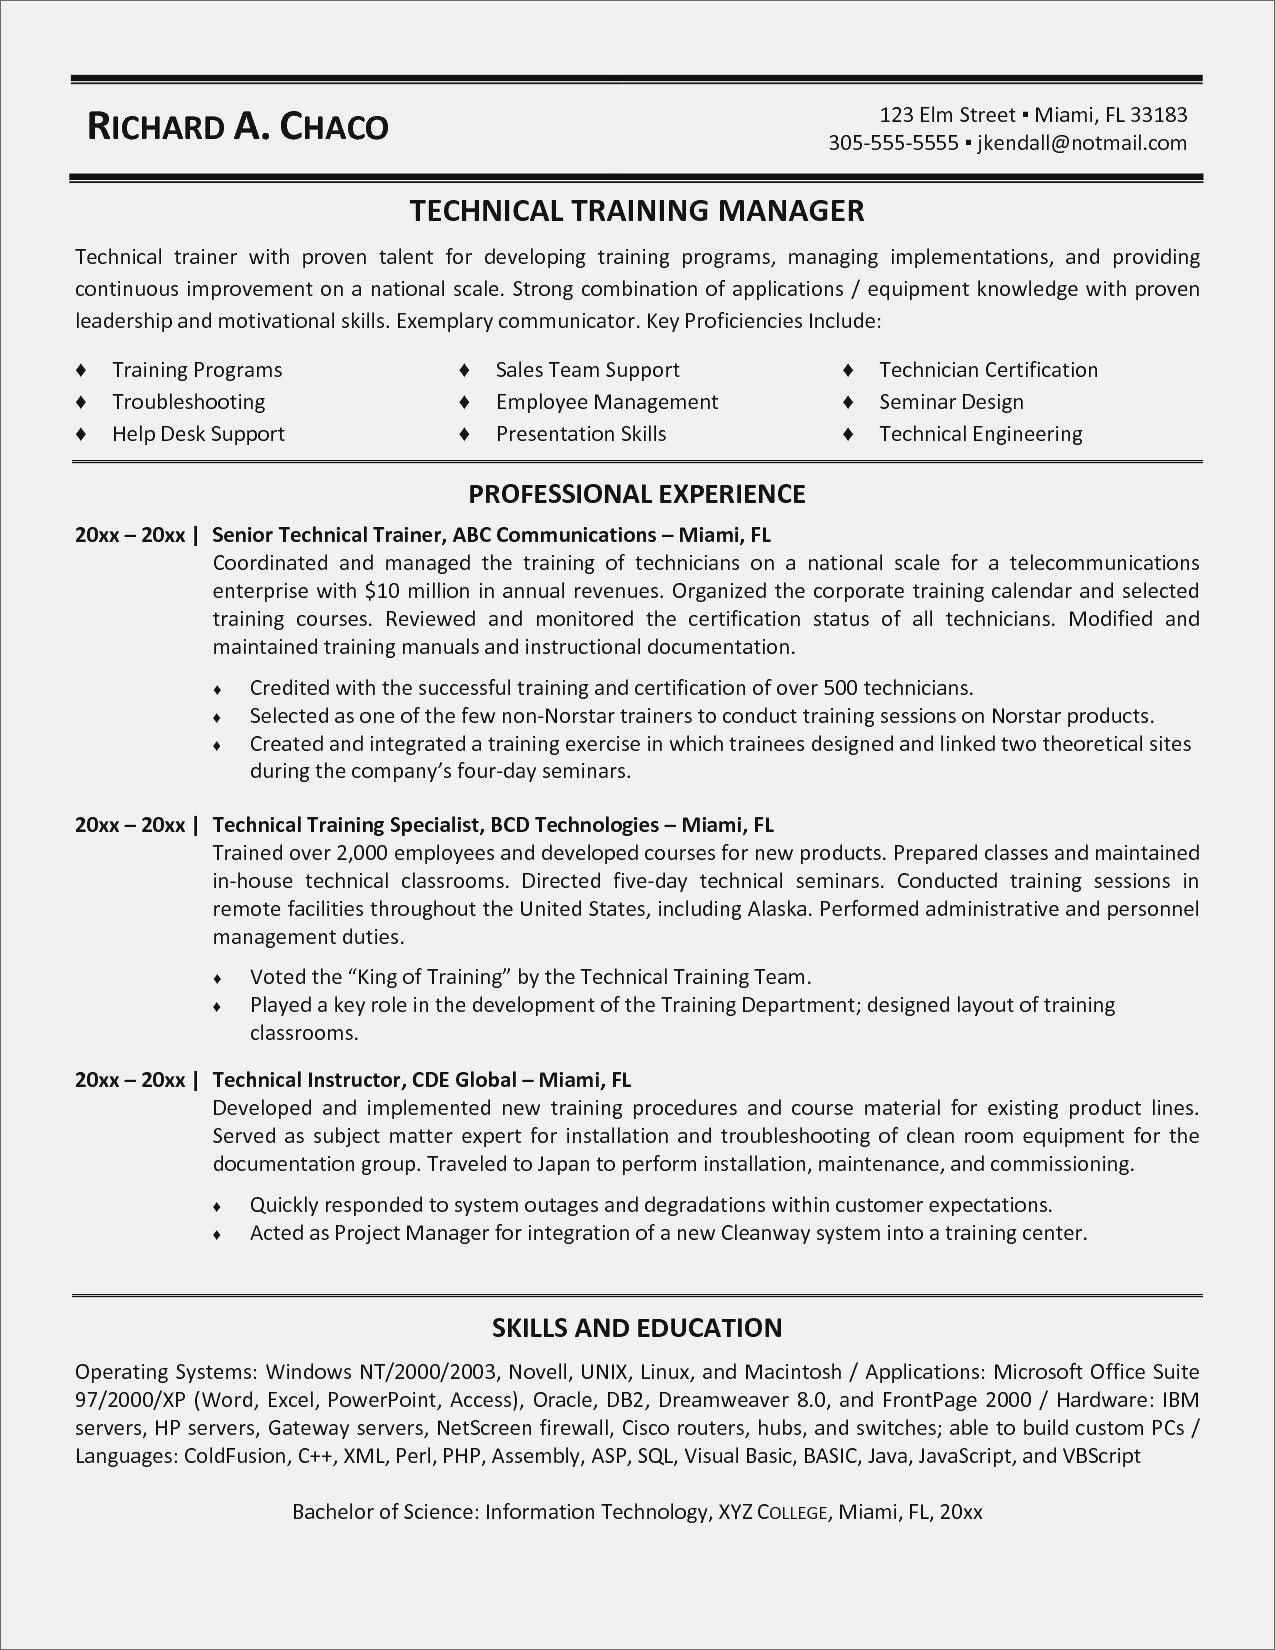 Strong Skills for Resume - ☆ Tech Skills for Resume Awesome Examples Resumes Ecologist Resume